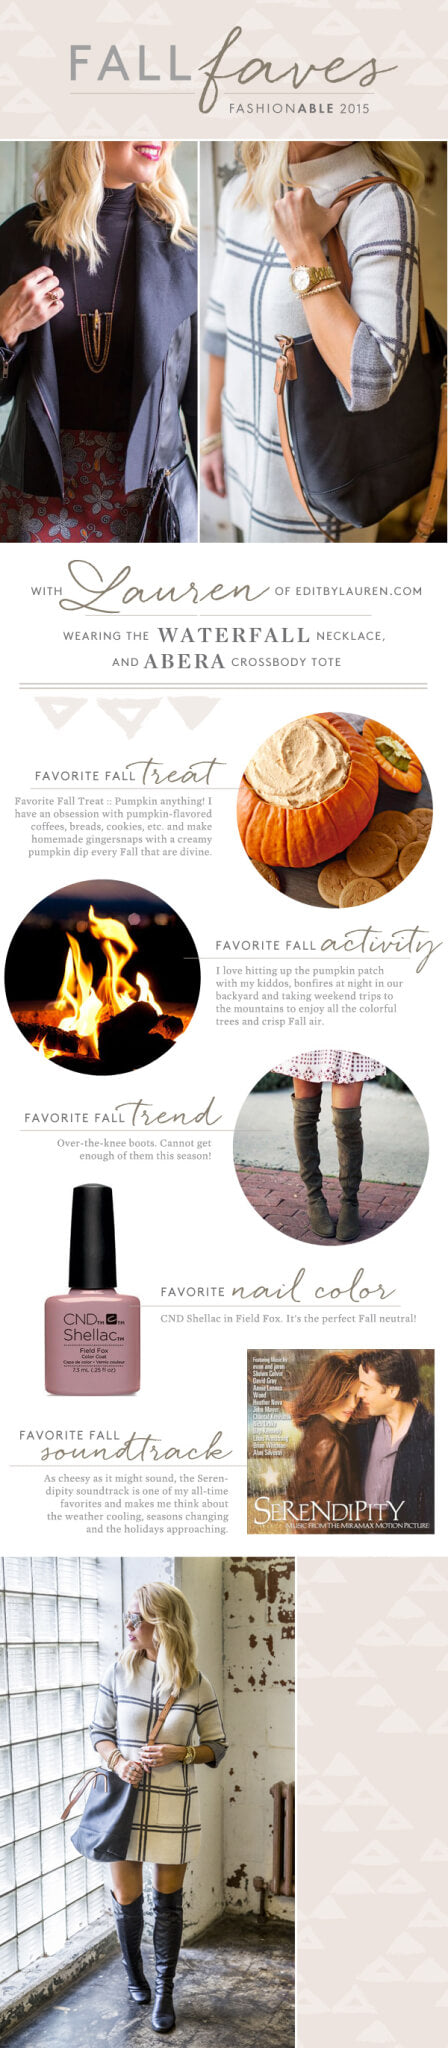 Fall Faves - FASHIONABLE